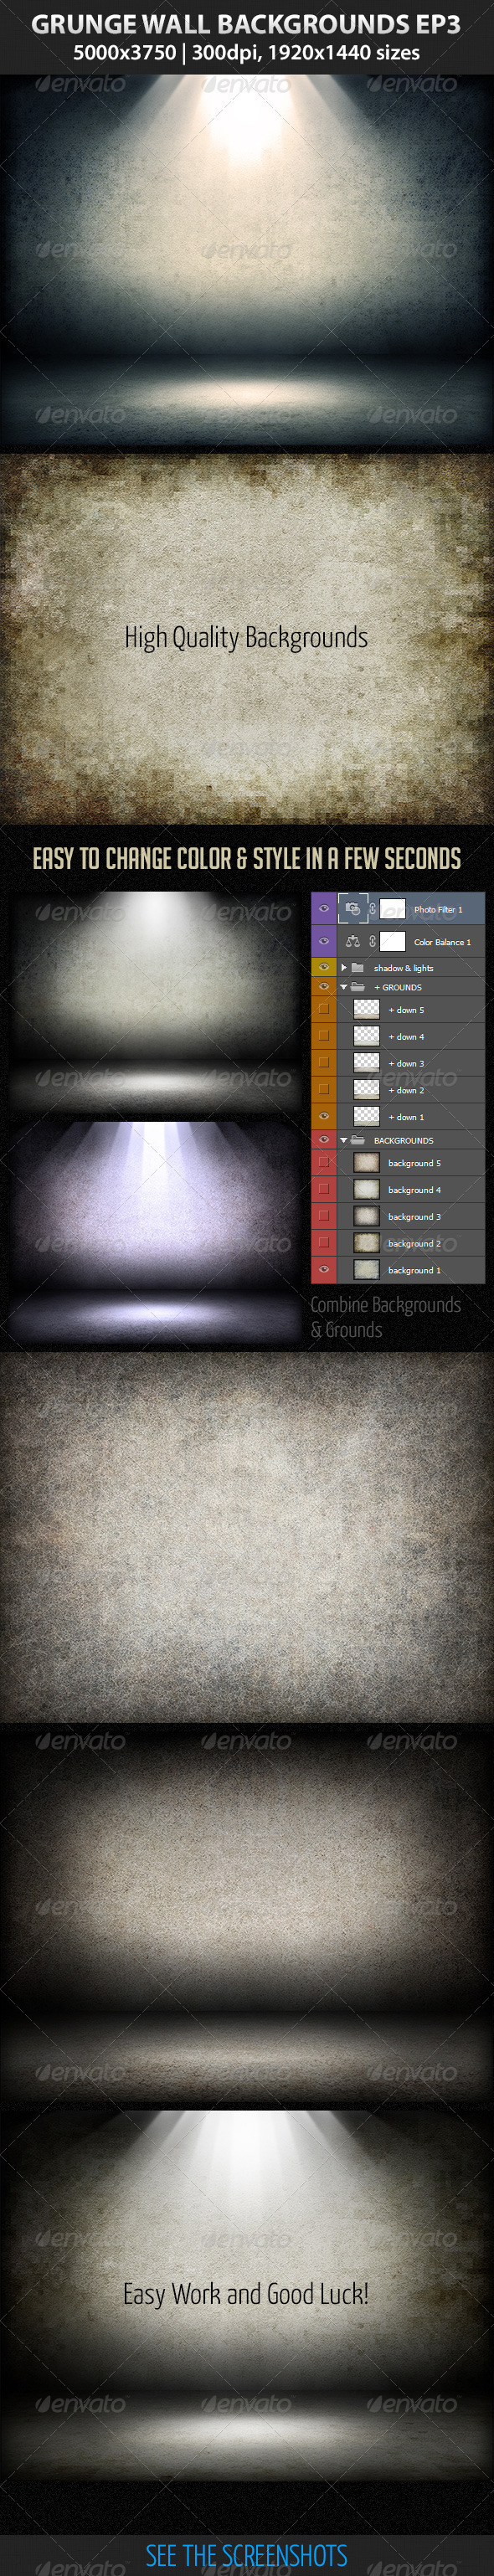 GraphicRiver Grunge Wall Backgrounds Ep 3 3319128